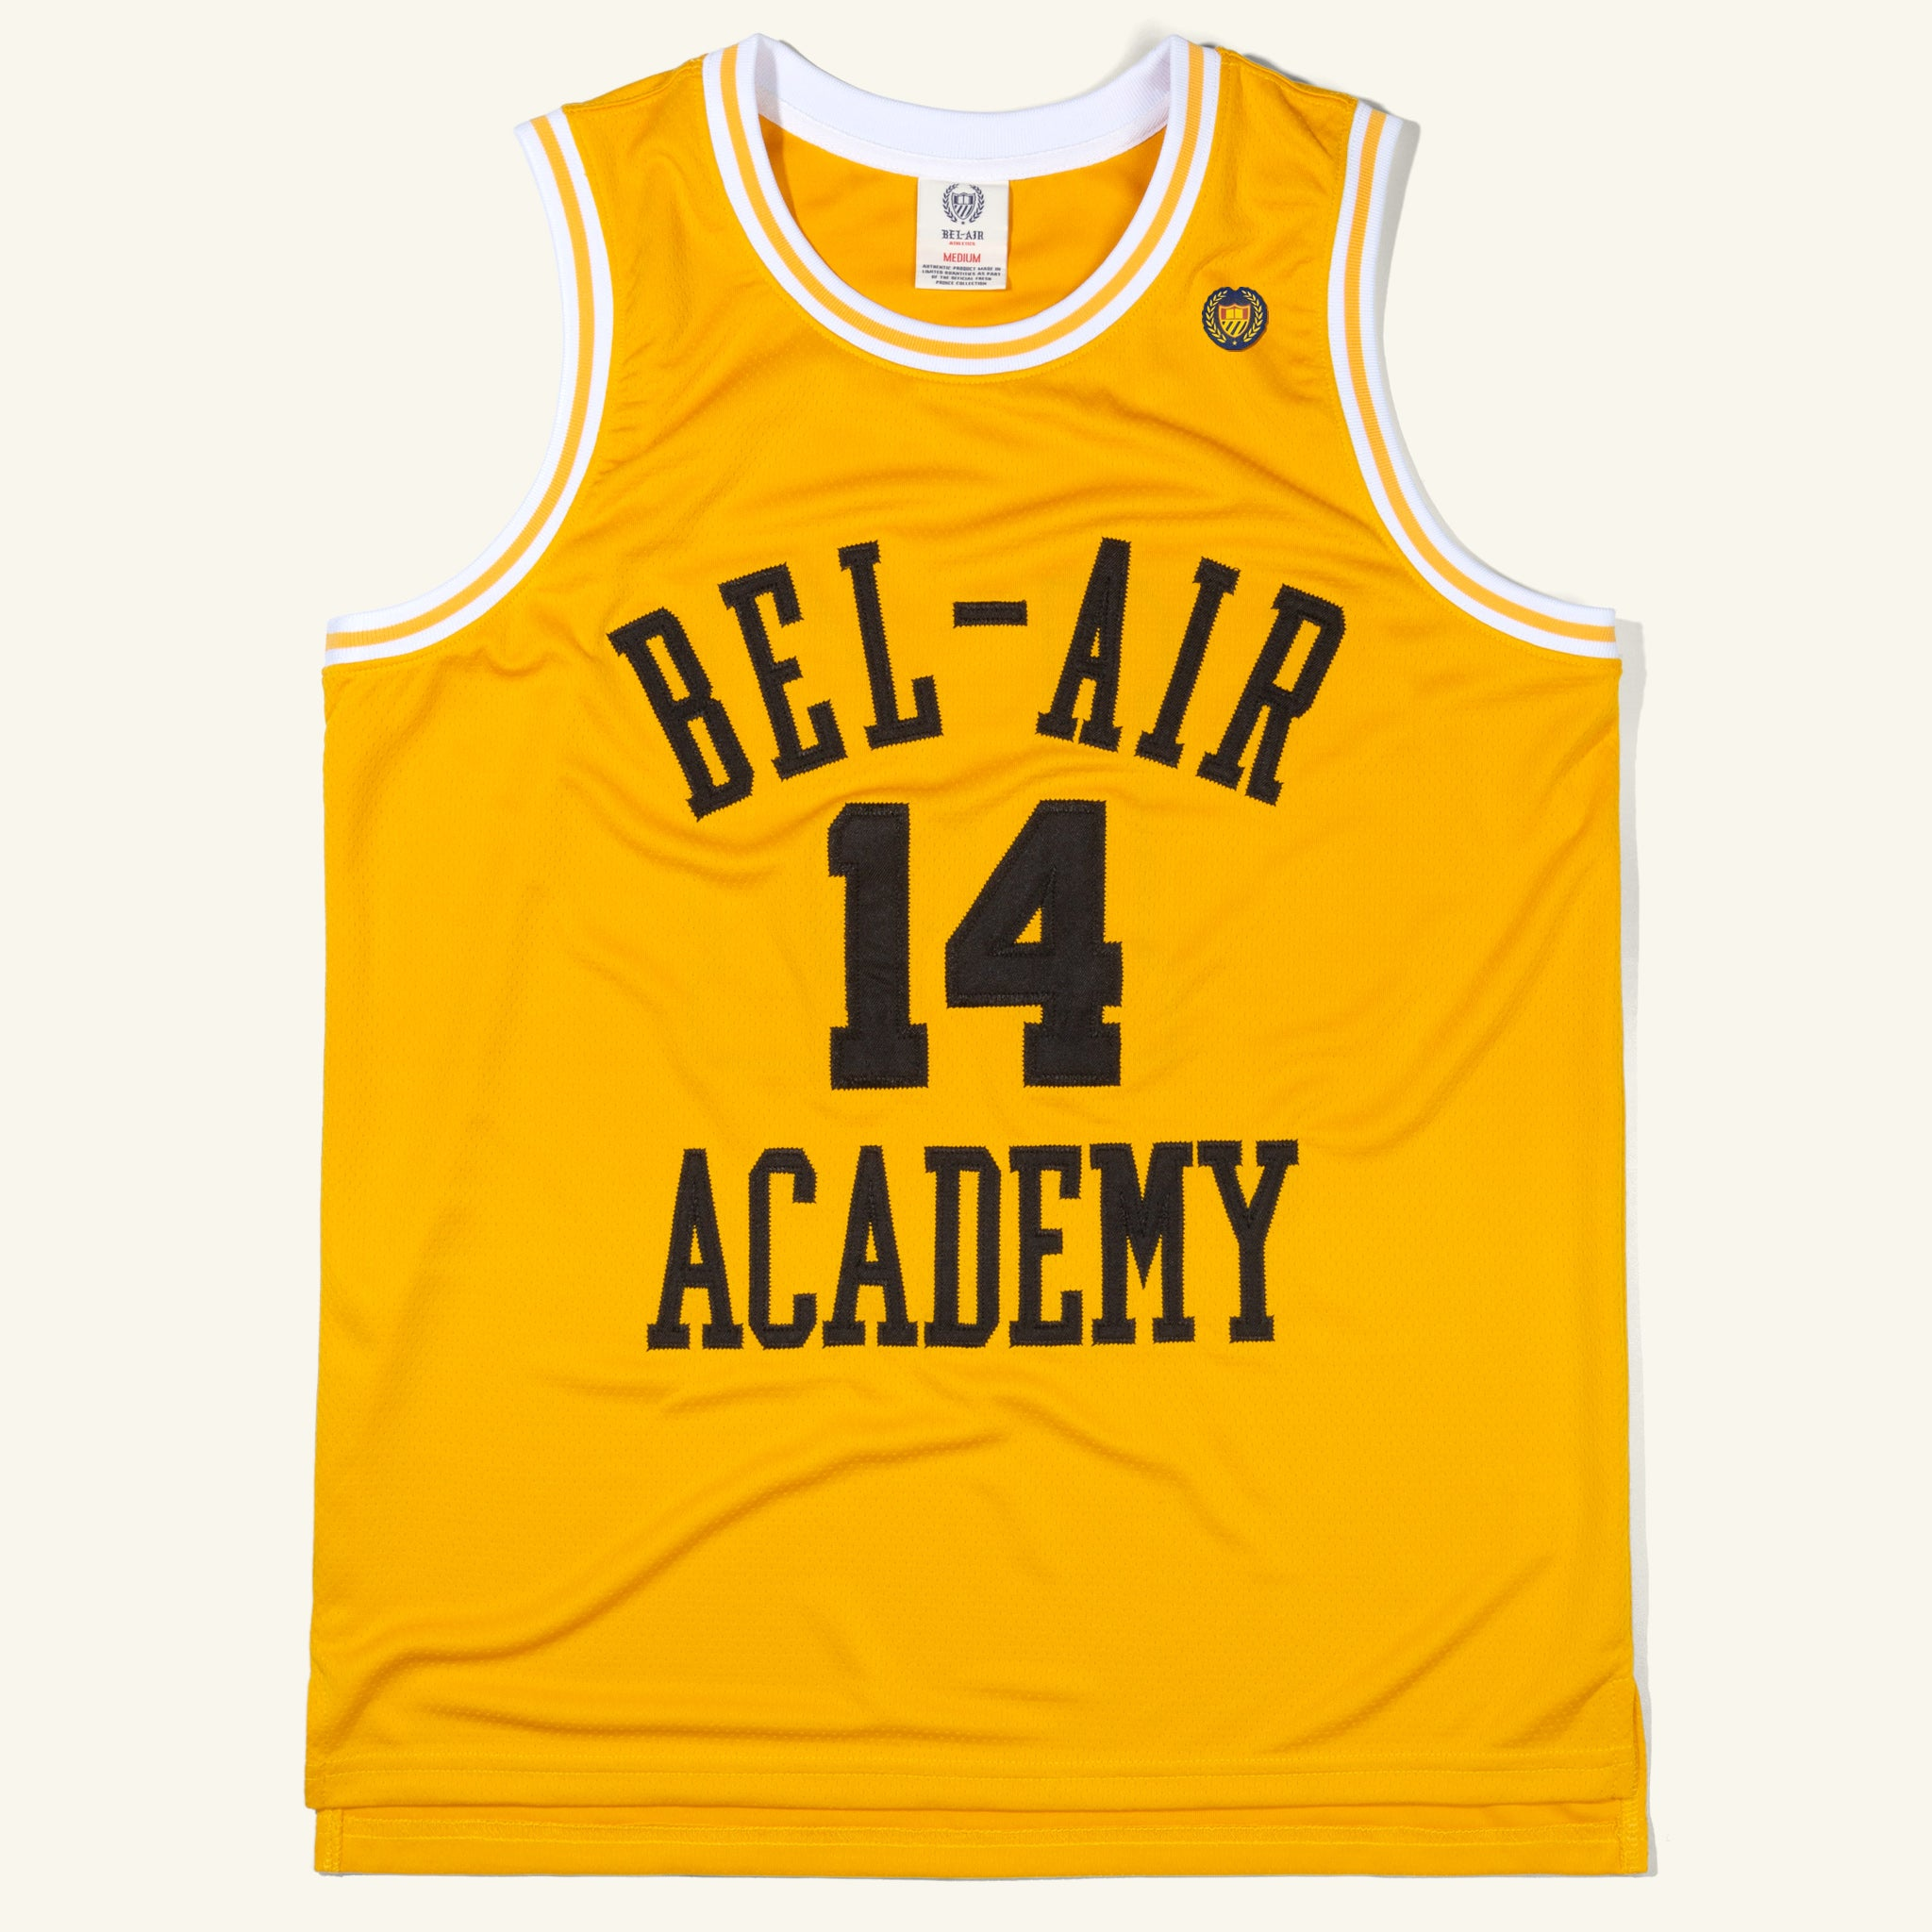 Academy Basketball Jersey Gold Image  #1